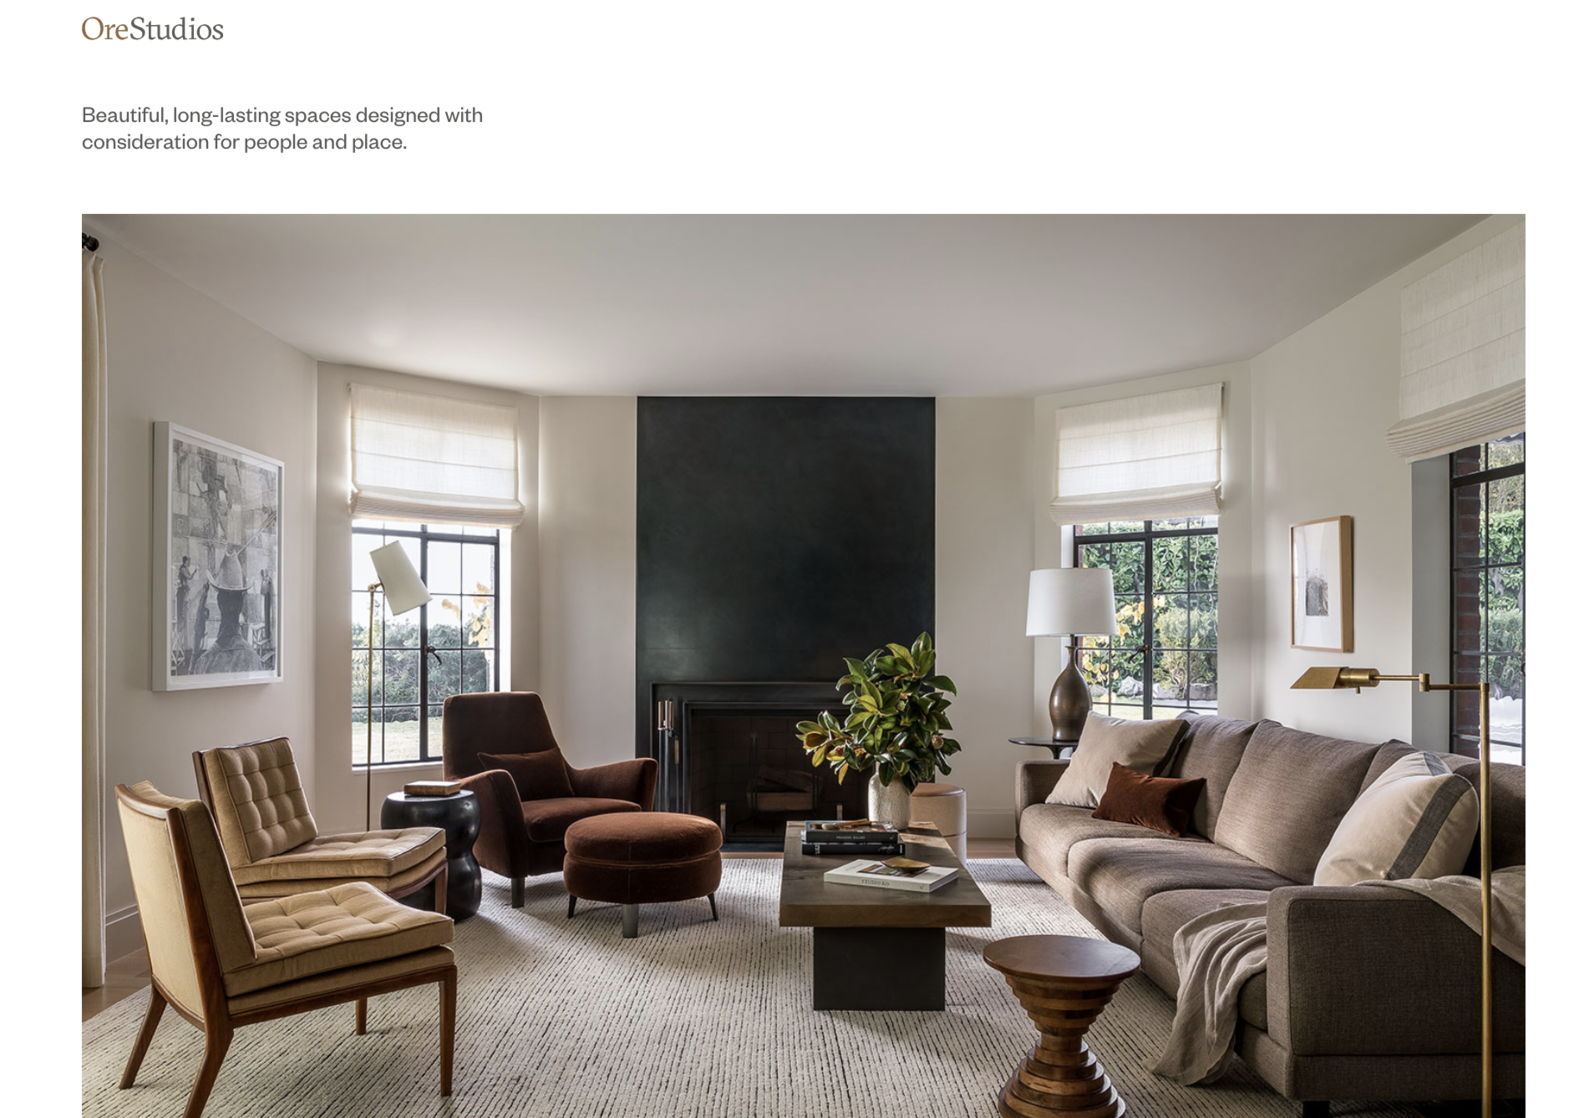 interior designer portfolio website - weblium blog